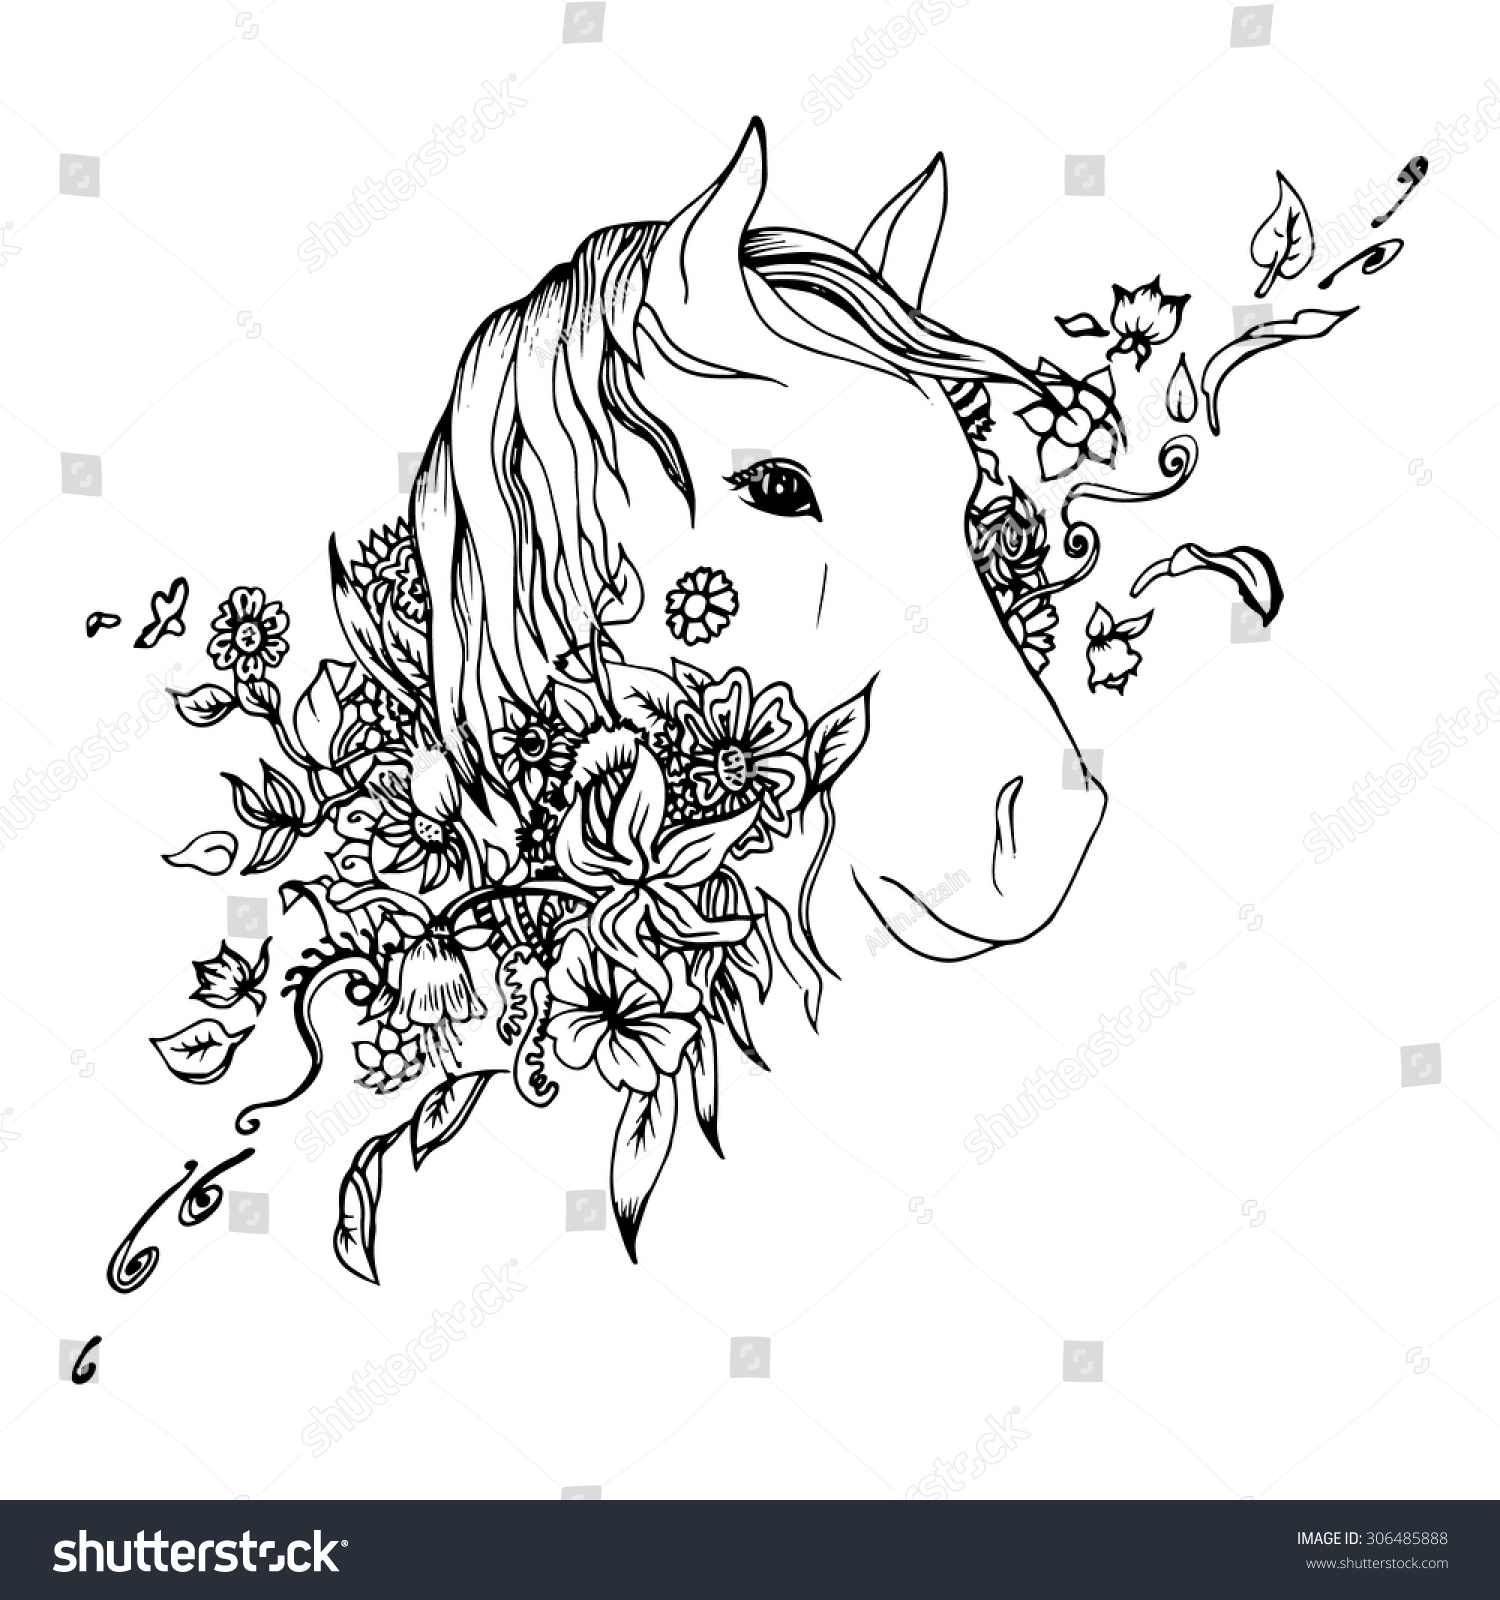 Black White Horse Head Isolated Engraving Stock Vector Royalty Free 306485888